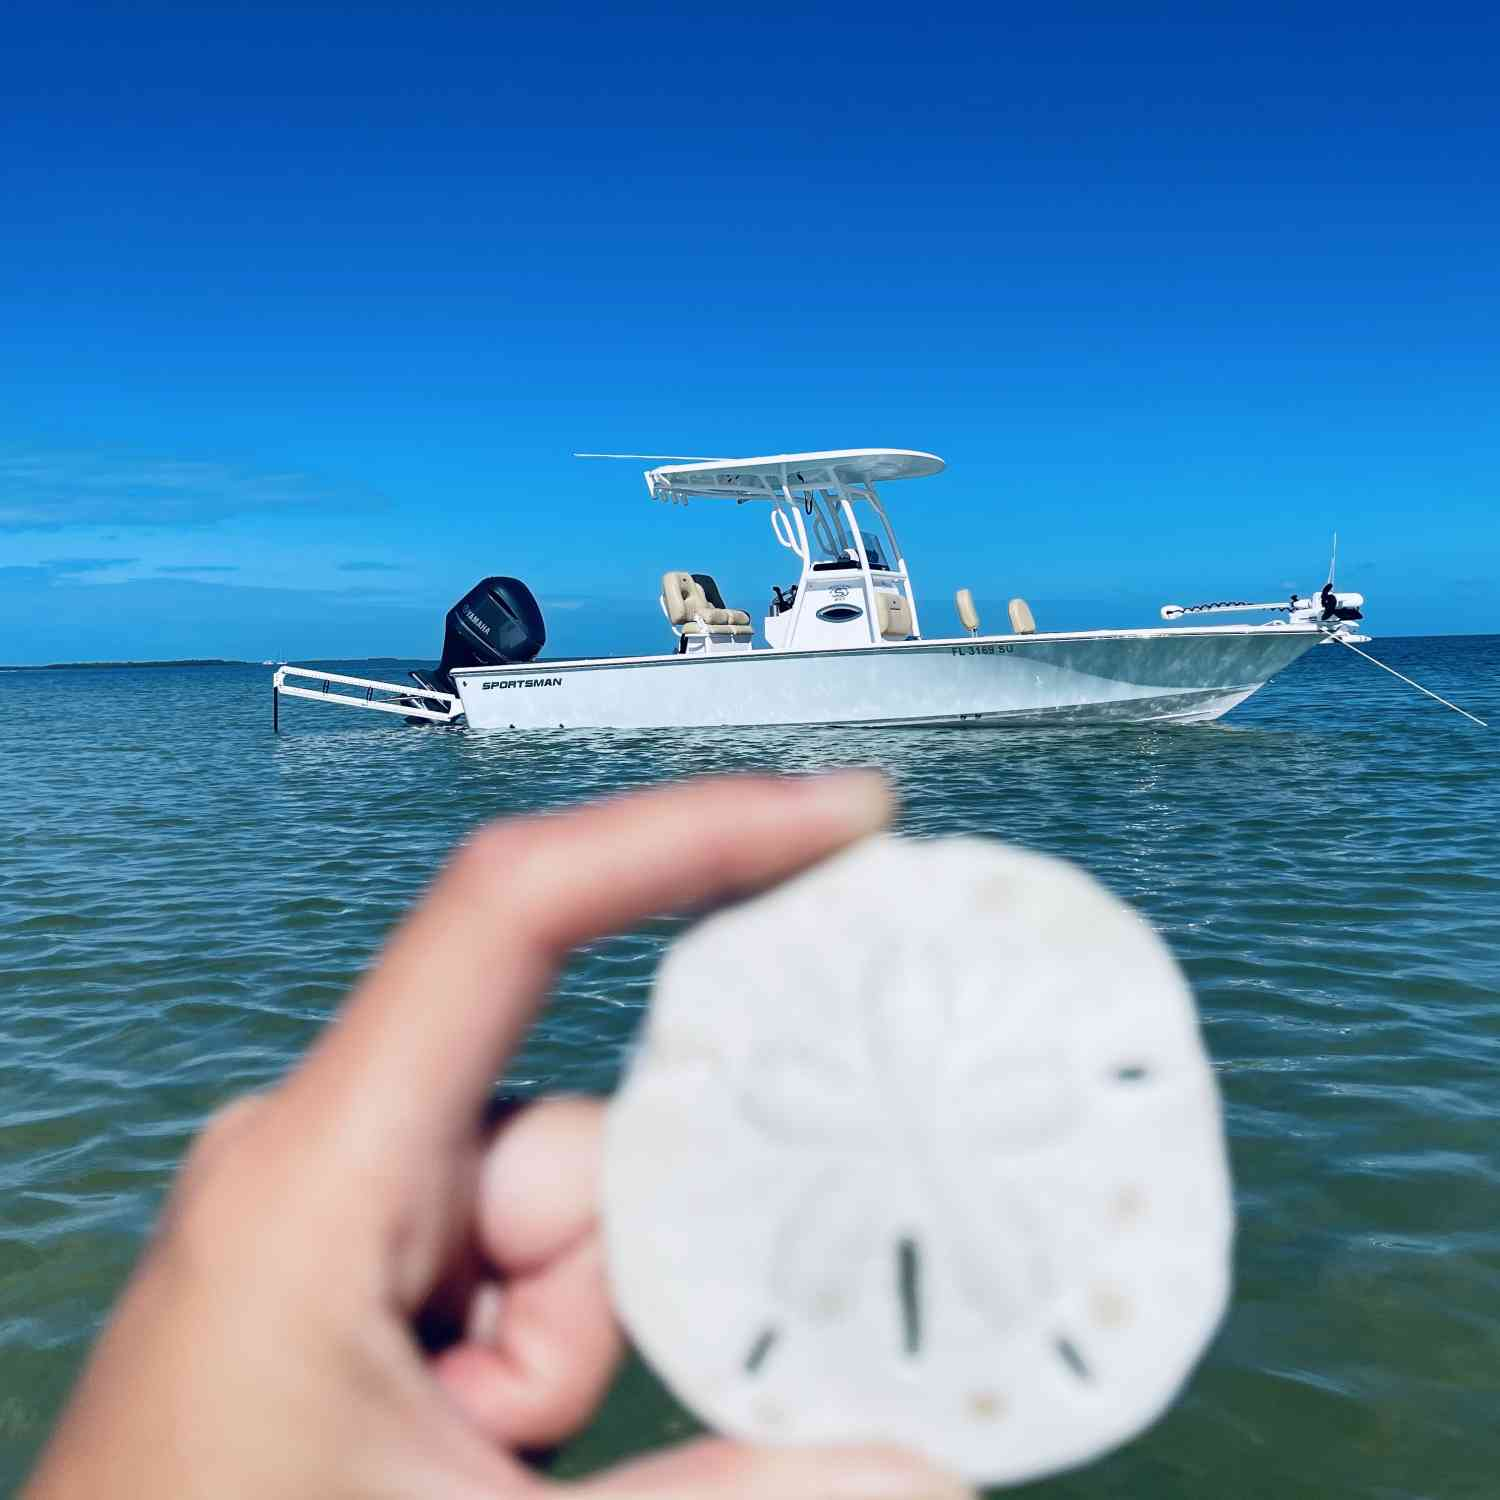 Title: Thanksgiving day - On board their Sportsman Masters 247 Bay Boat - Location: Anclote key Florida. Participating in the Photo Contest #SportsmanDecember2020